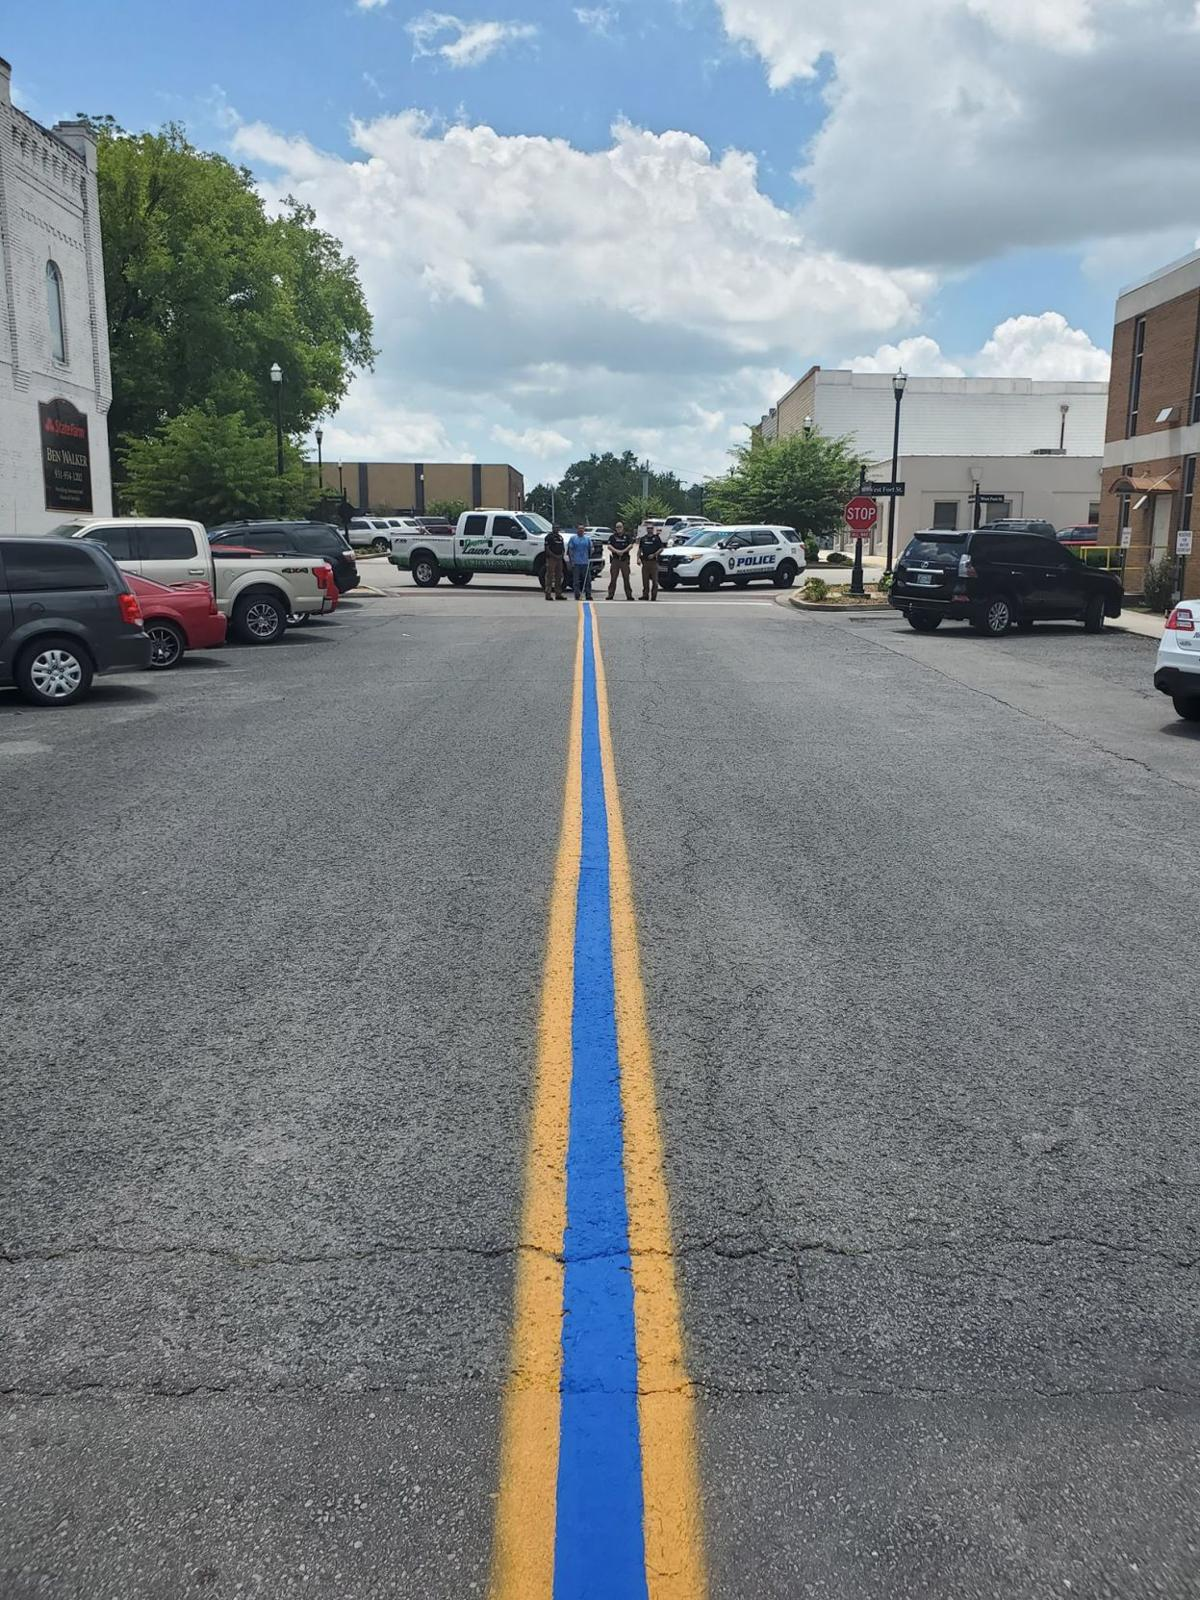 'Thin blue line' shows support to MPD